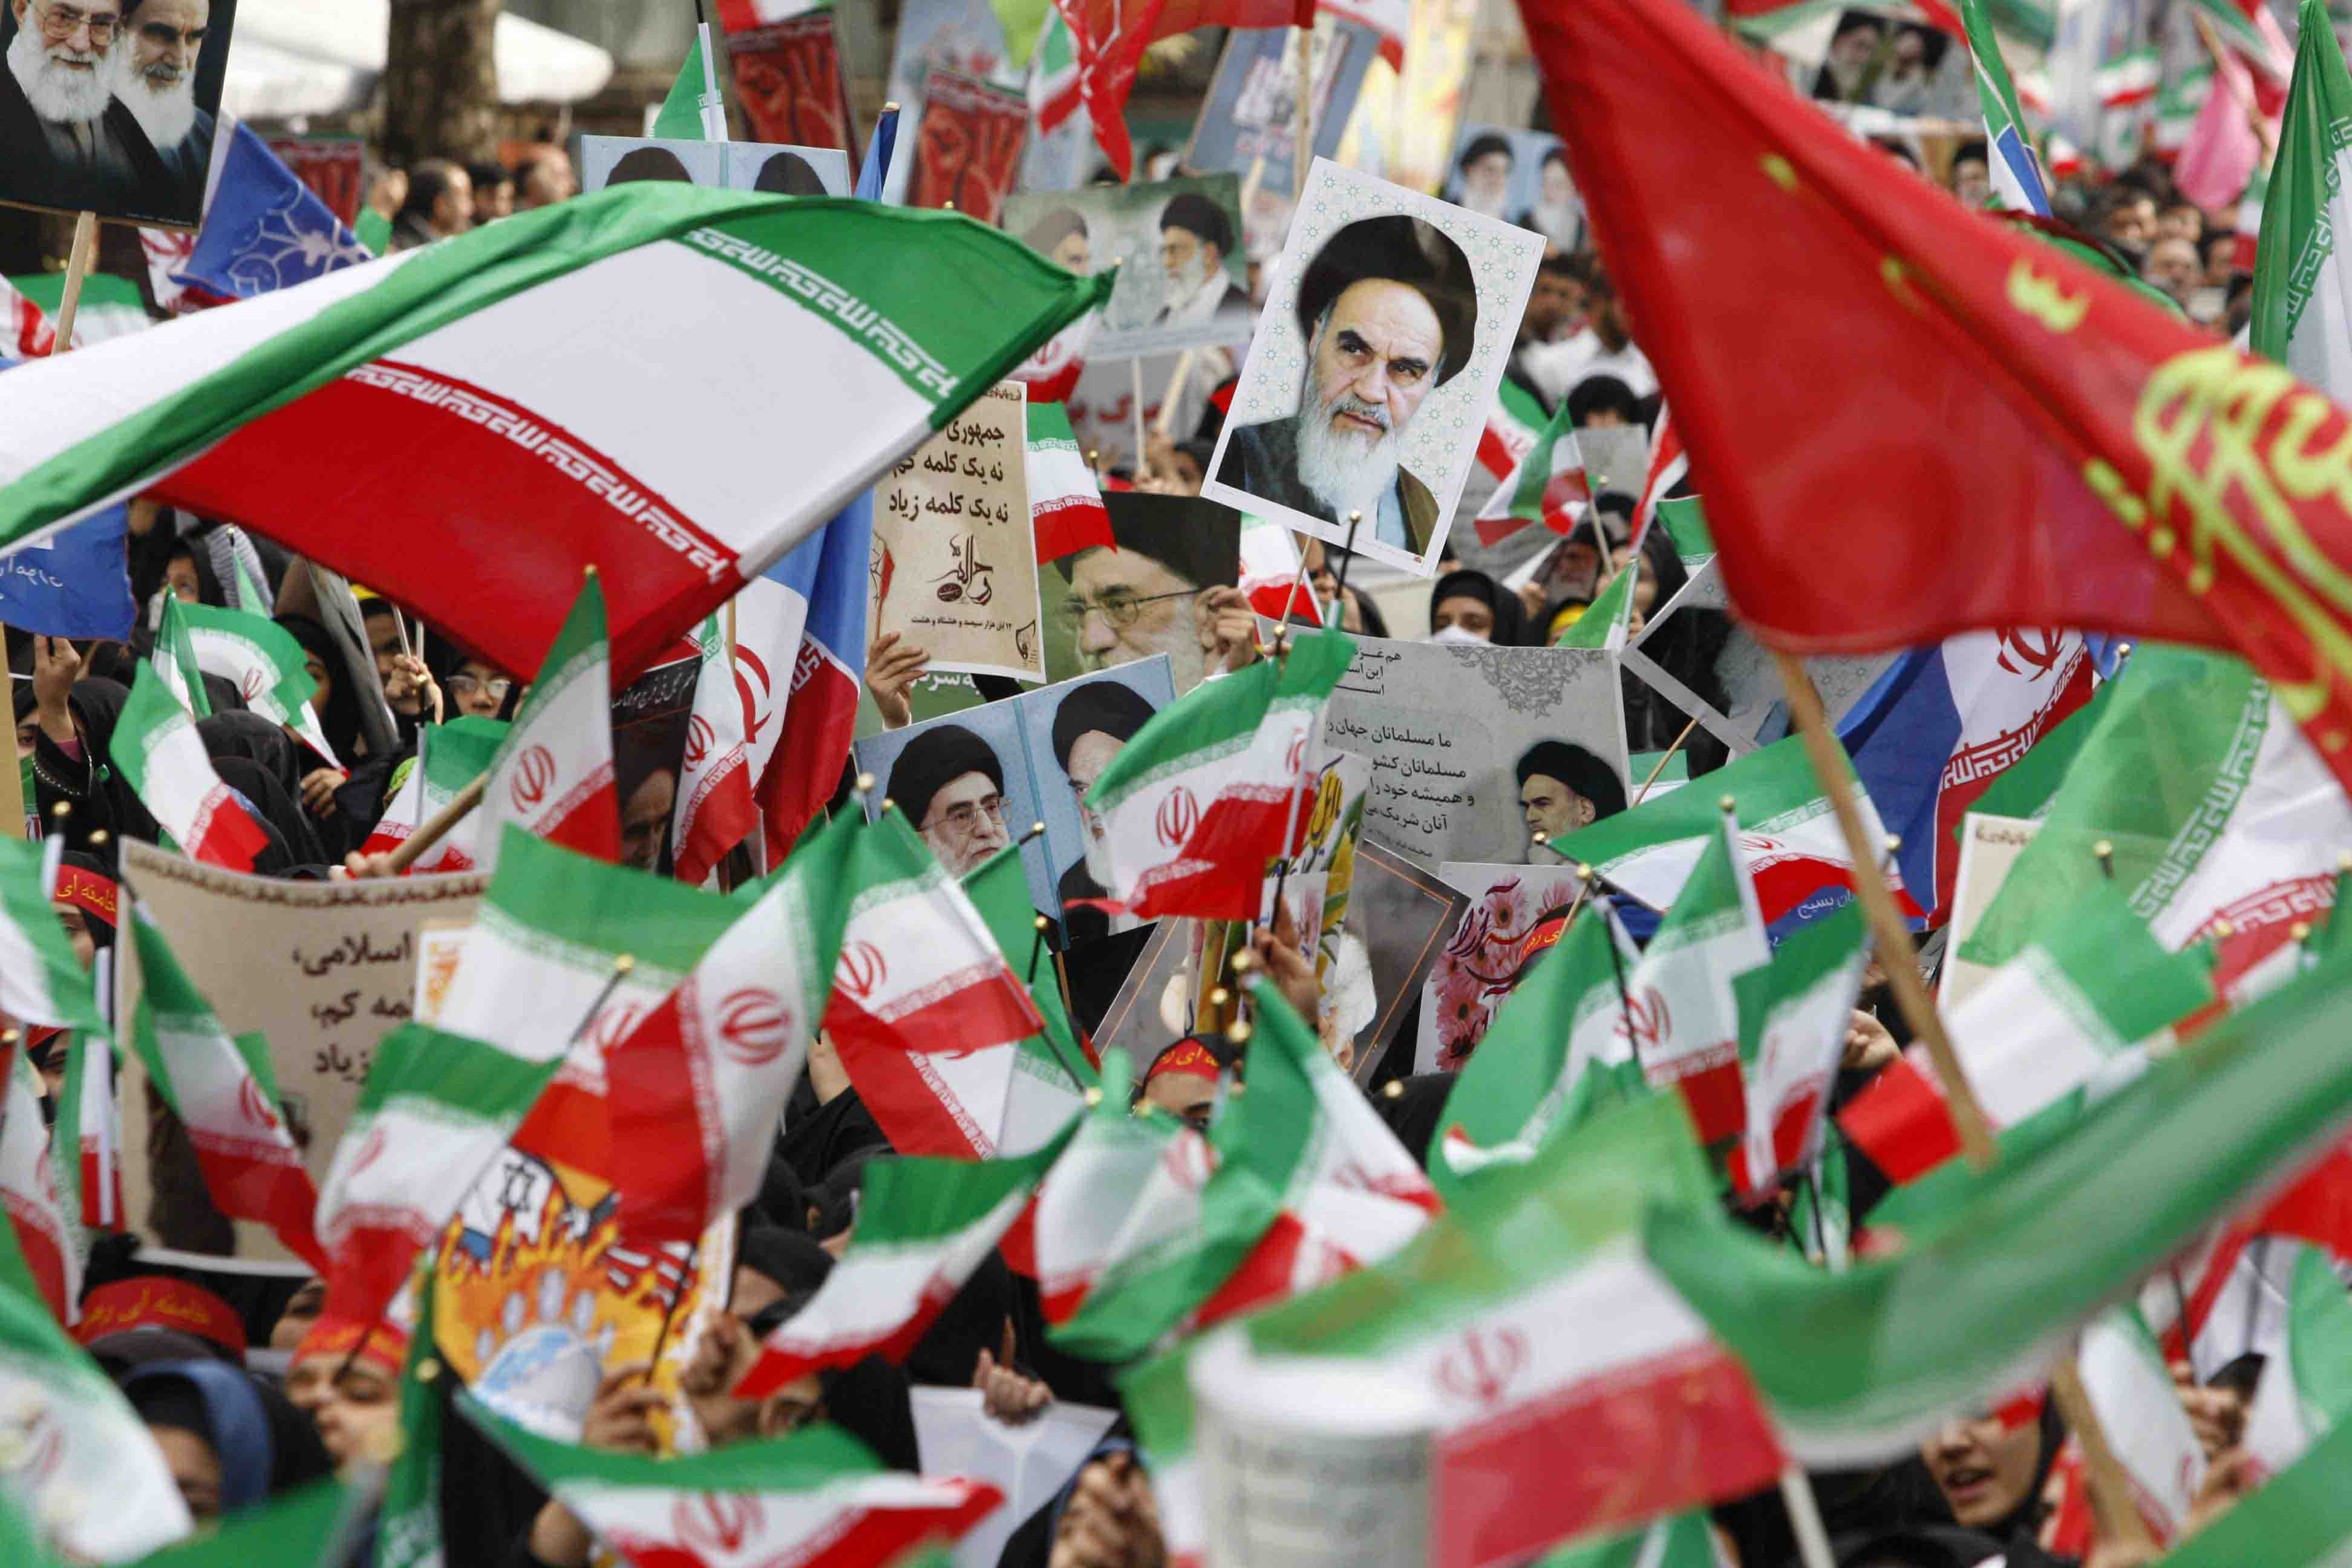 While it strengthened Islamic rule at home in Iran, it left the country cut off from most of the rest of the world.